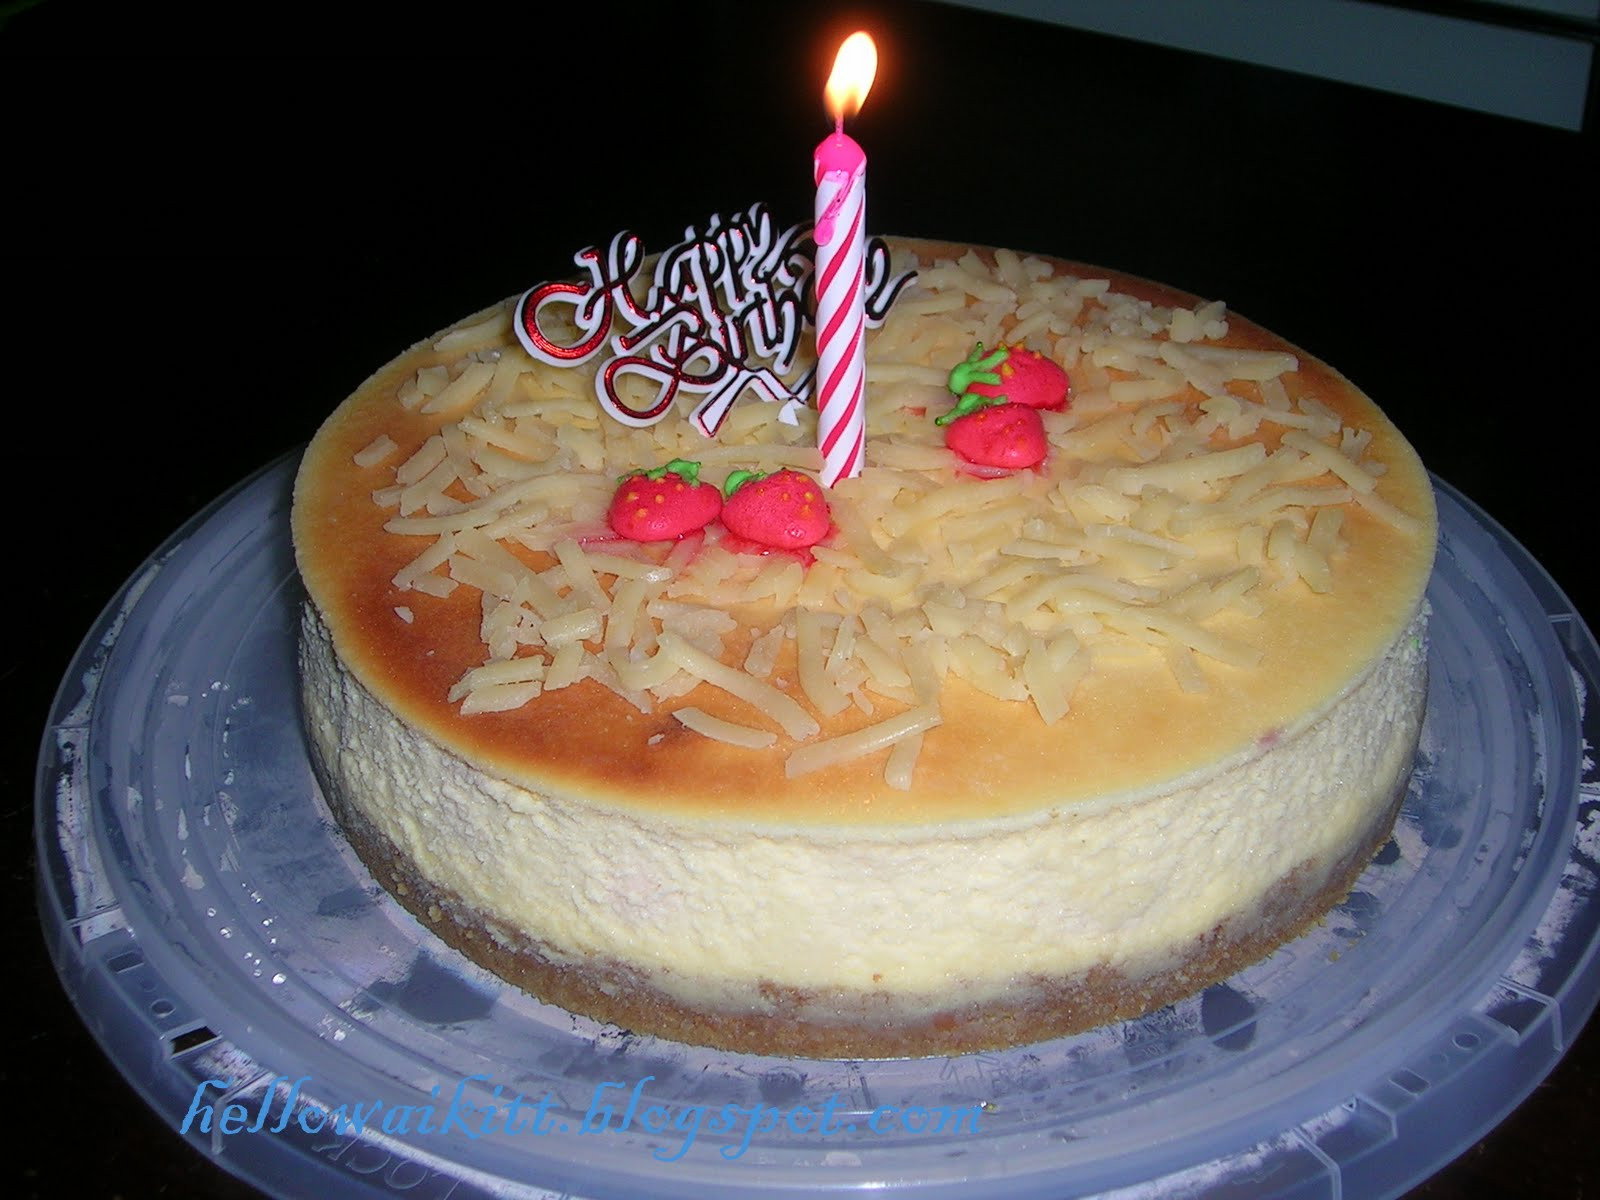 Best ideas about Birthday Cake For Husband . Save or Pin 一日三餐 老公的生日蛋糕 My Husband s Birthday Cake Now.